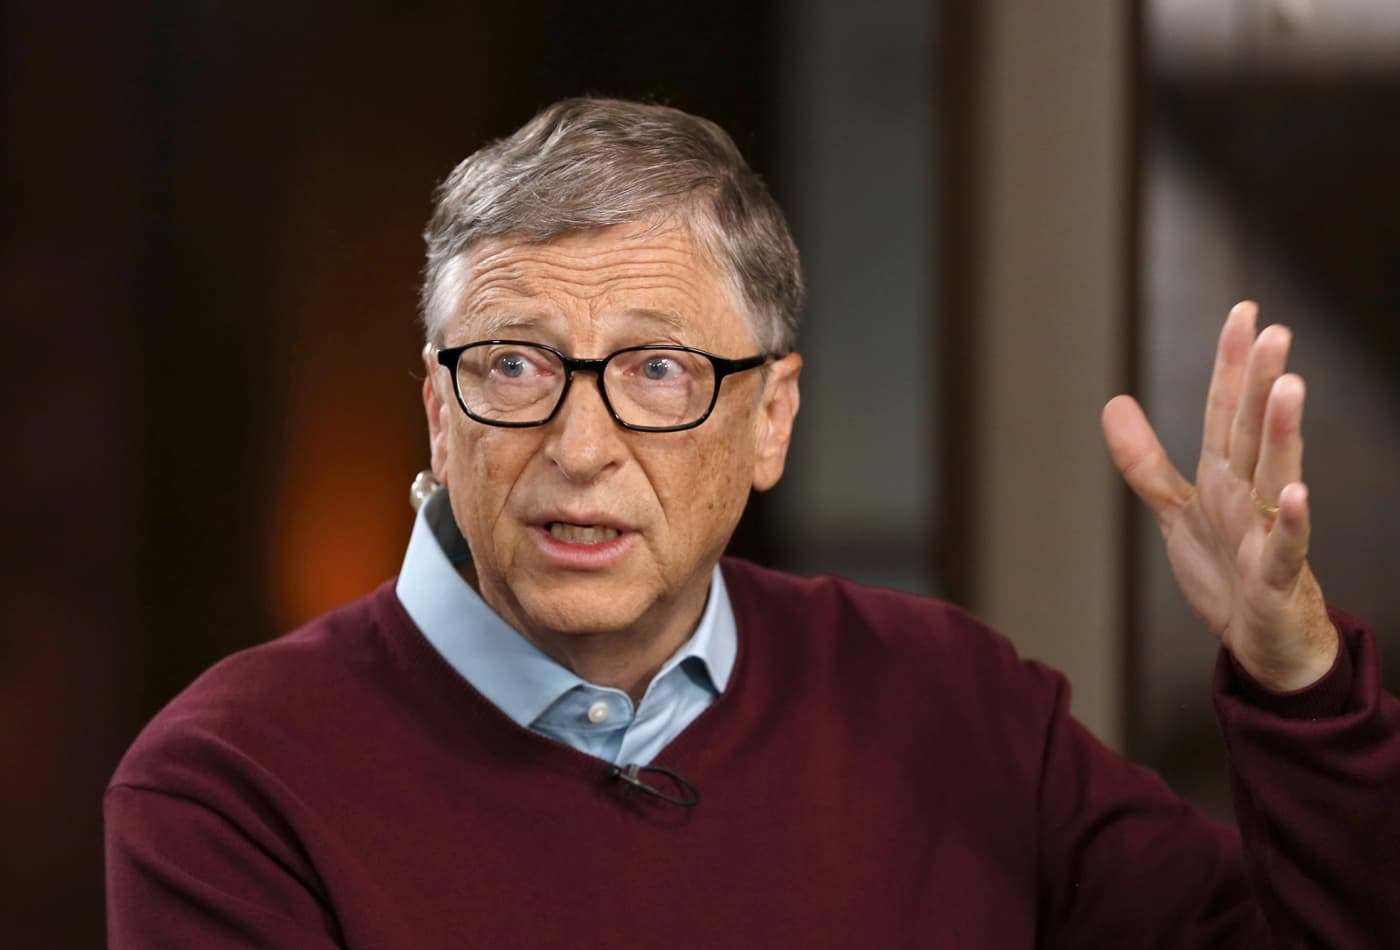 Bill Gates in 2018: World needs to prepare for pandemics just like war